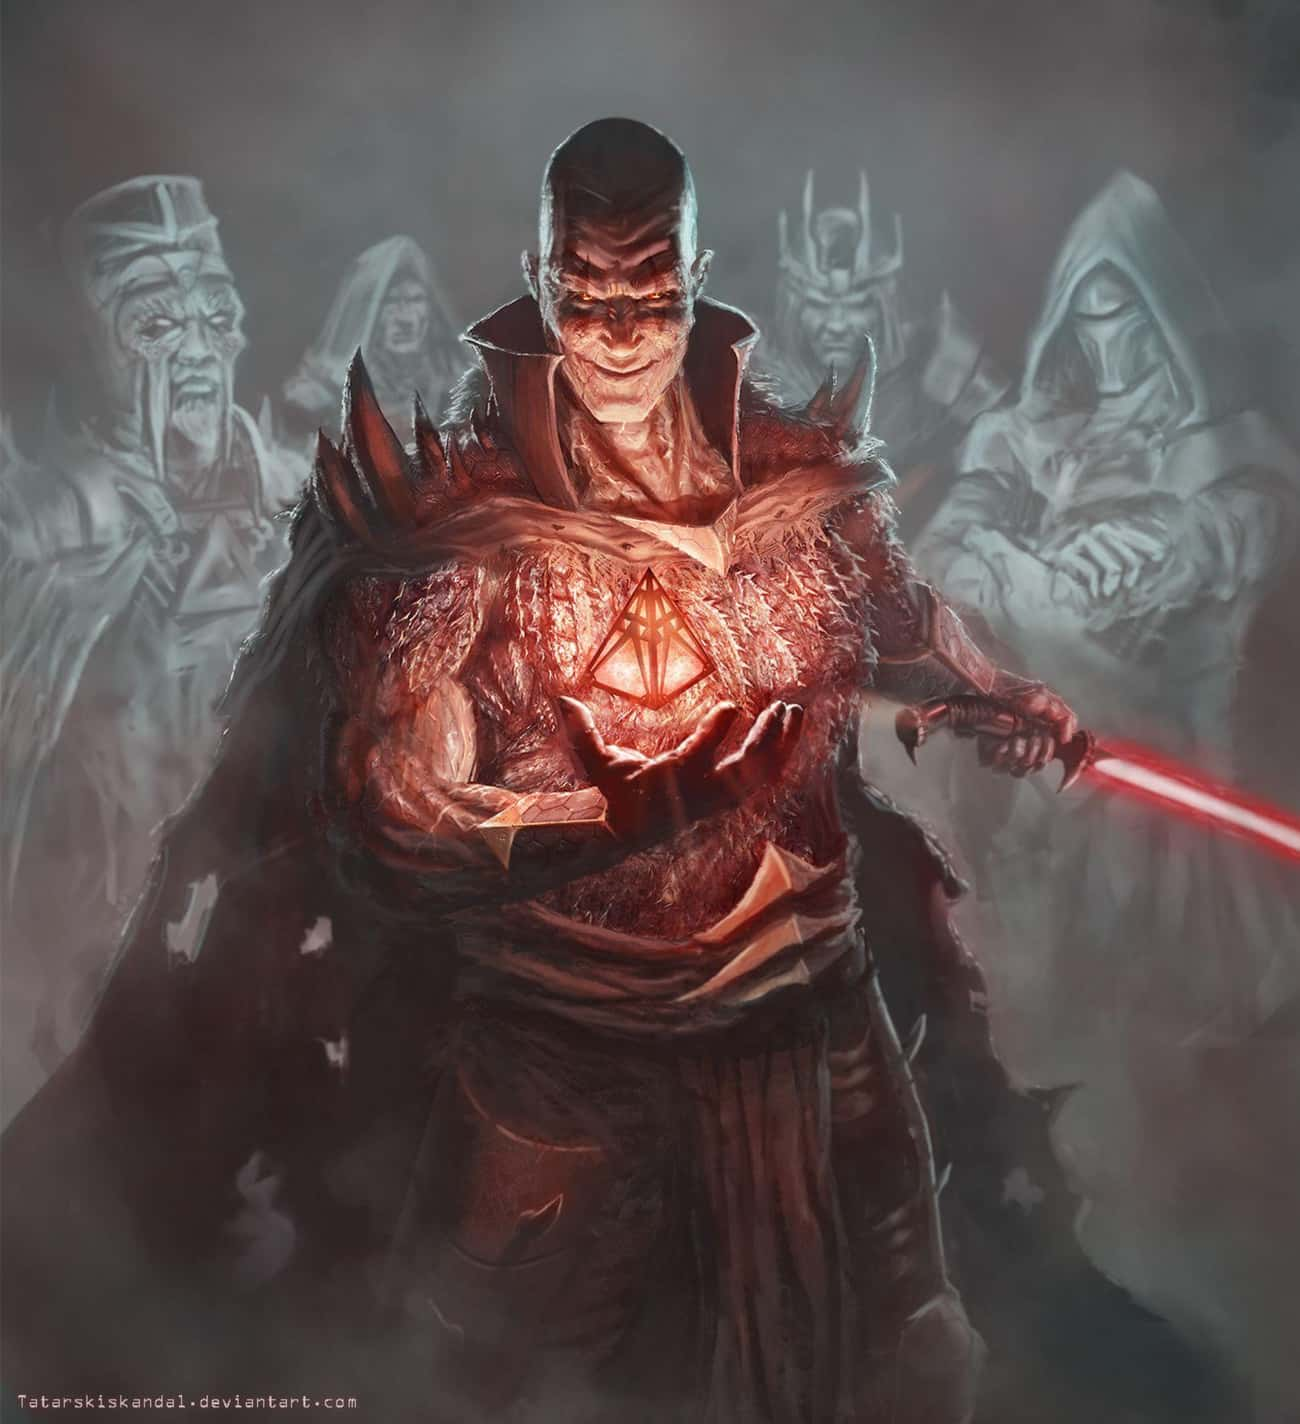 Slightly Closer To The Phantom is listed (or ranked) 4 on the list 13 Key Moments In The Star Wars Universe That Happened Before The Films